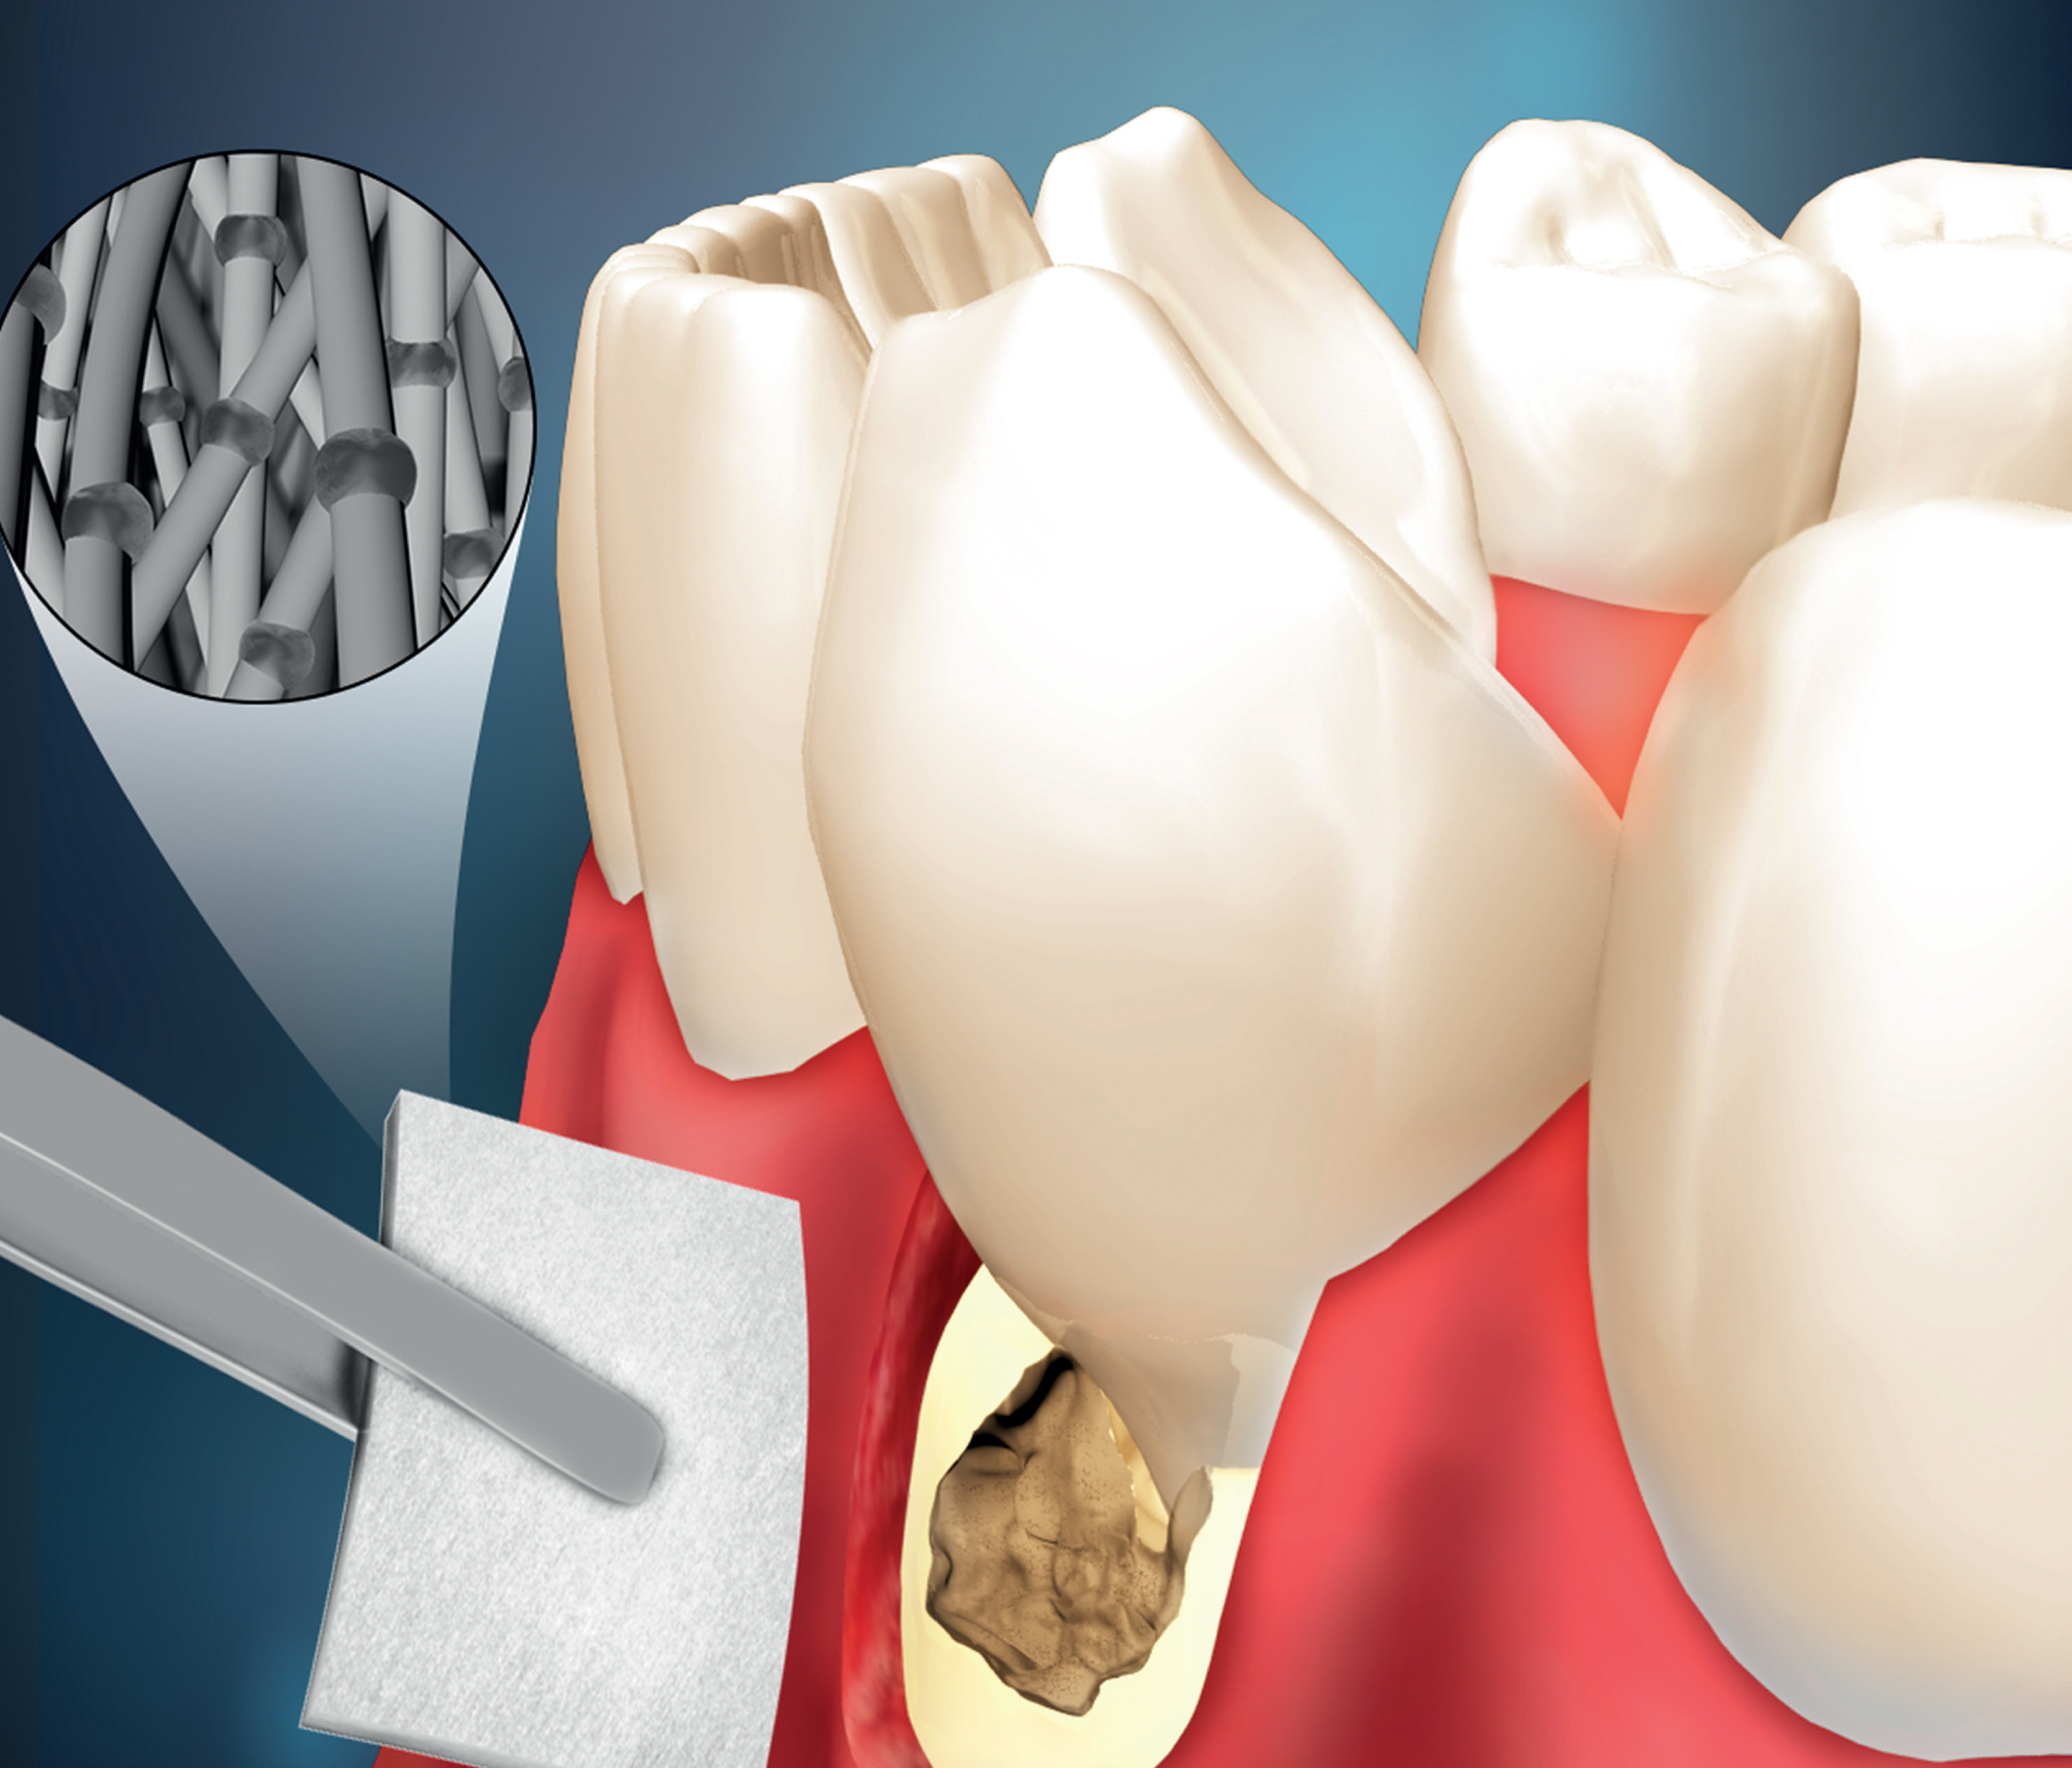 Cure for gum disease - Development and characterization ofa novel multifunctional membrane for periodontal tissue engineering.